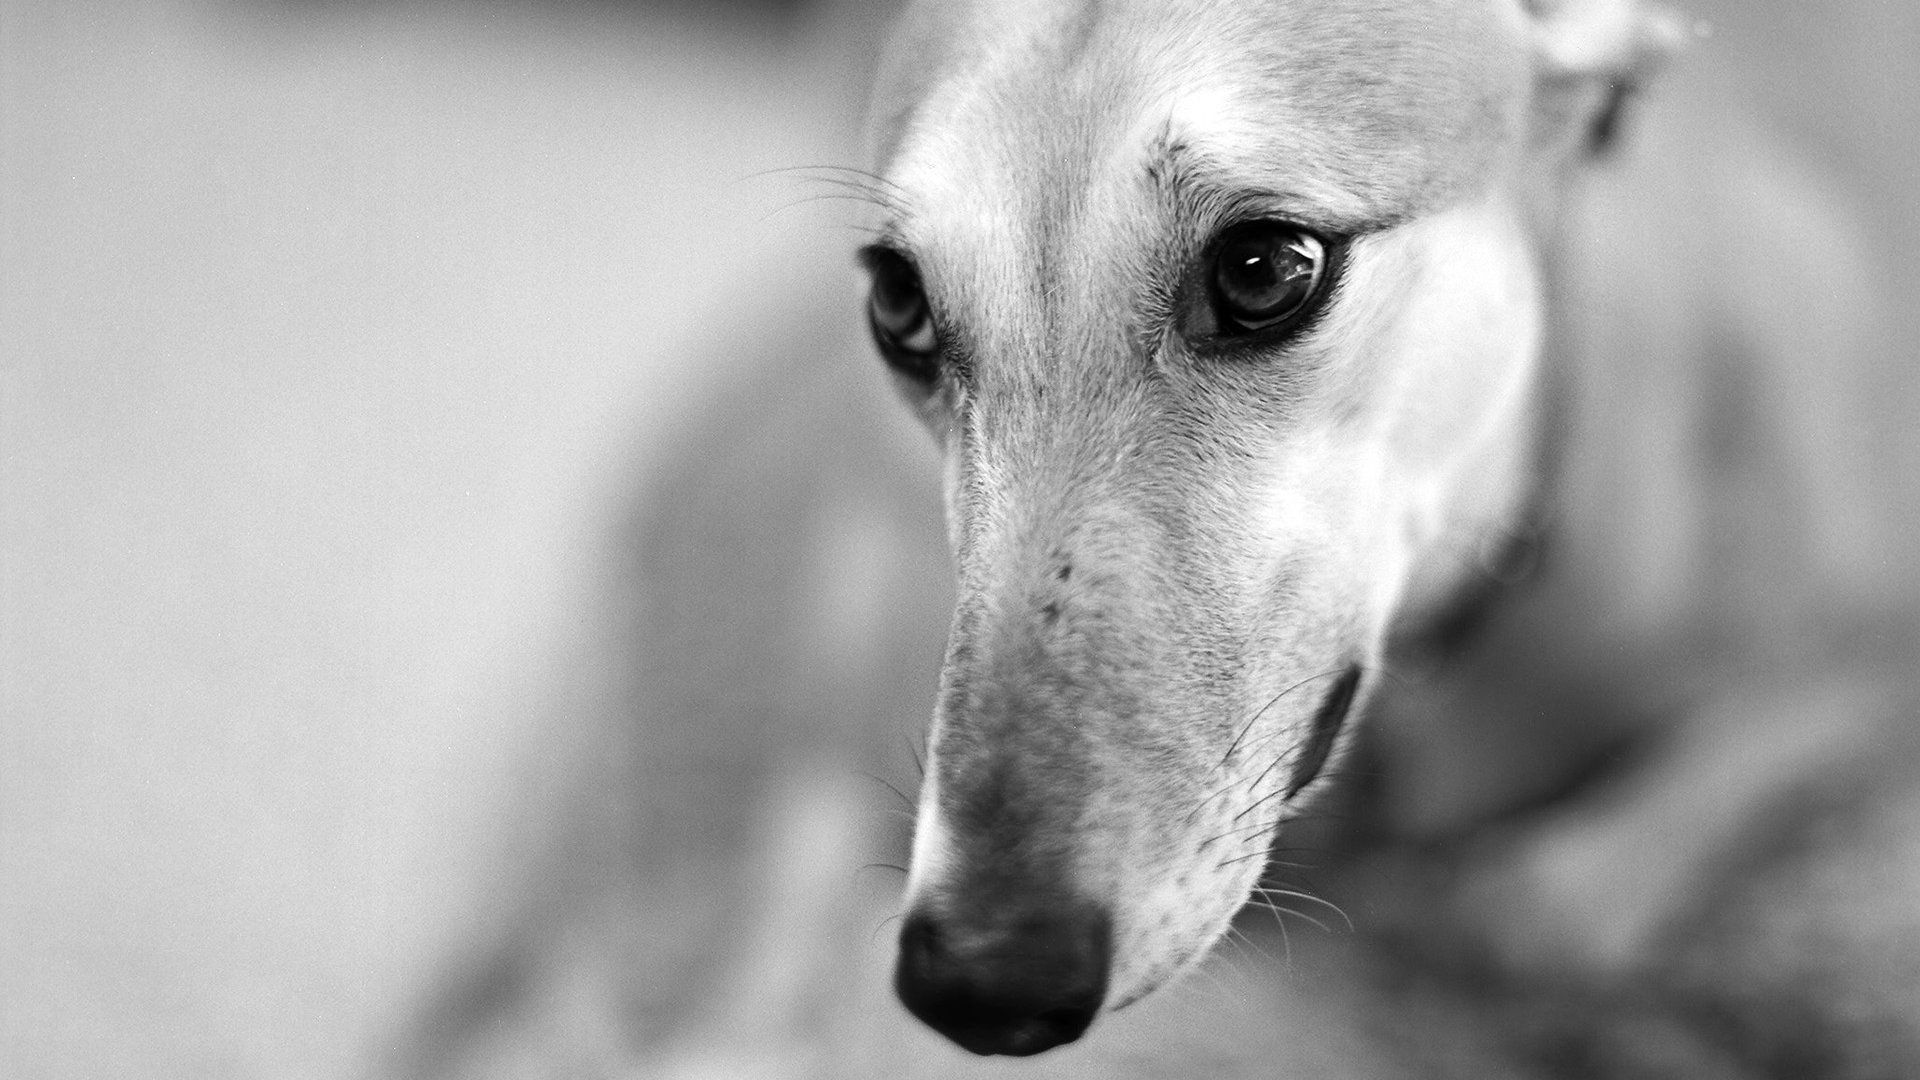 107359 download wallpaper Animals, Dog, Muzzle, Nose, Greased, Smeared, Bw, Chb screensavers and pictures for free